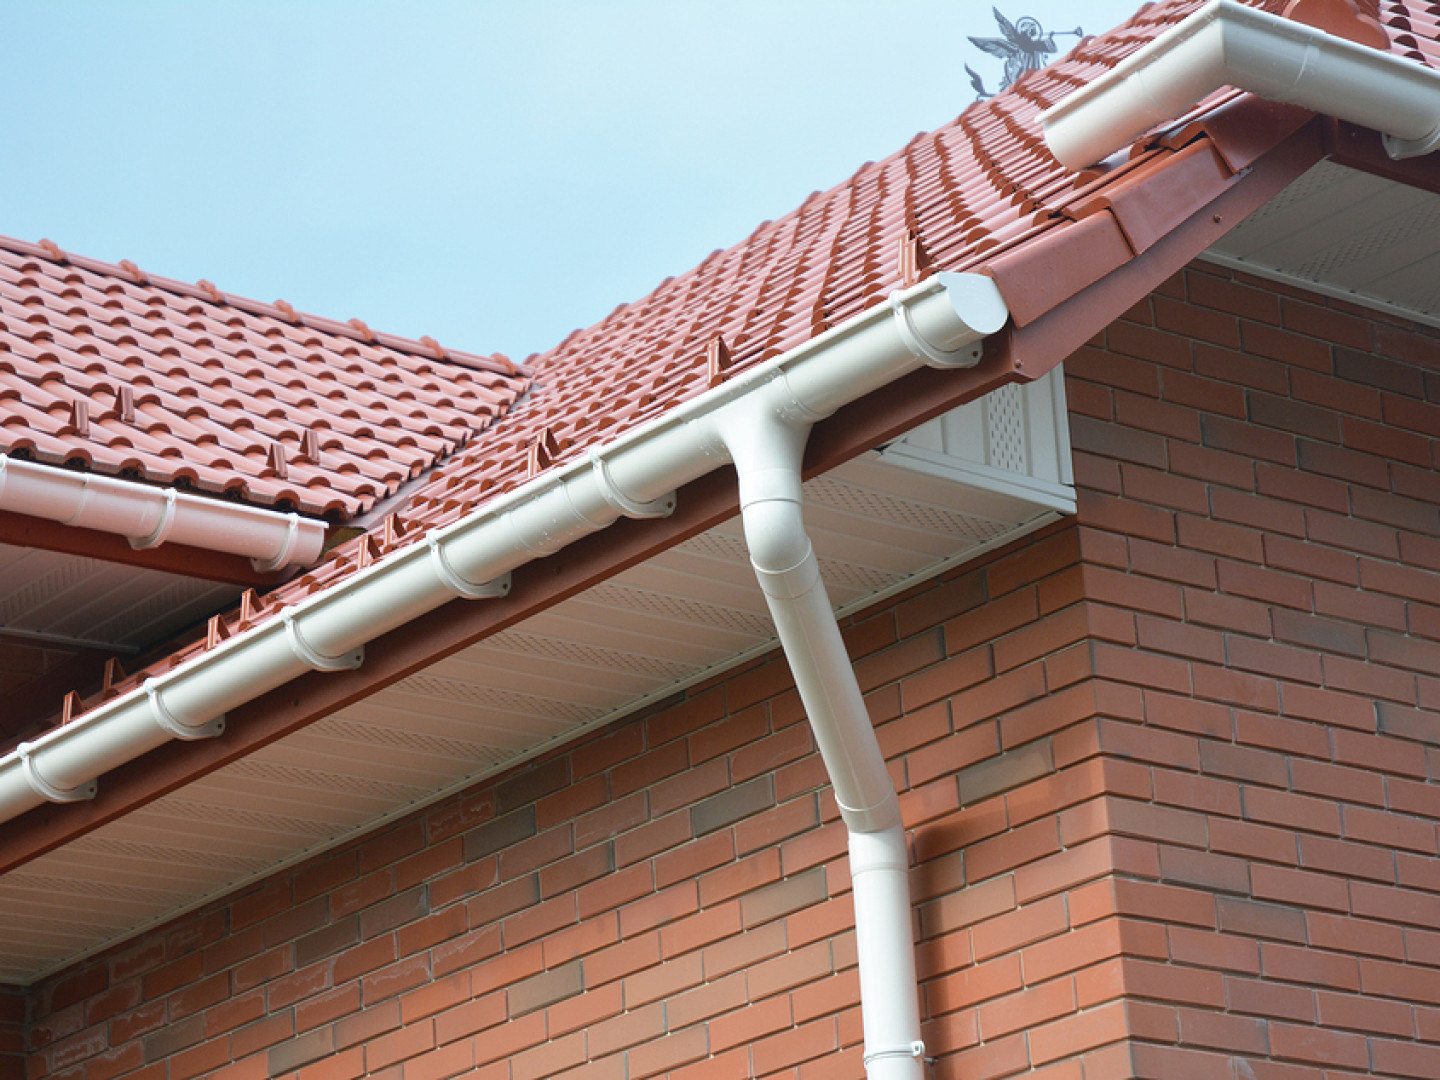 Gutter Repairs and Ice Dam Mediation in Warwick and Cranston, RI